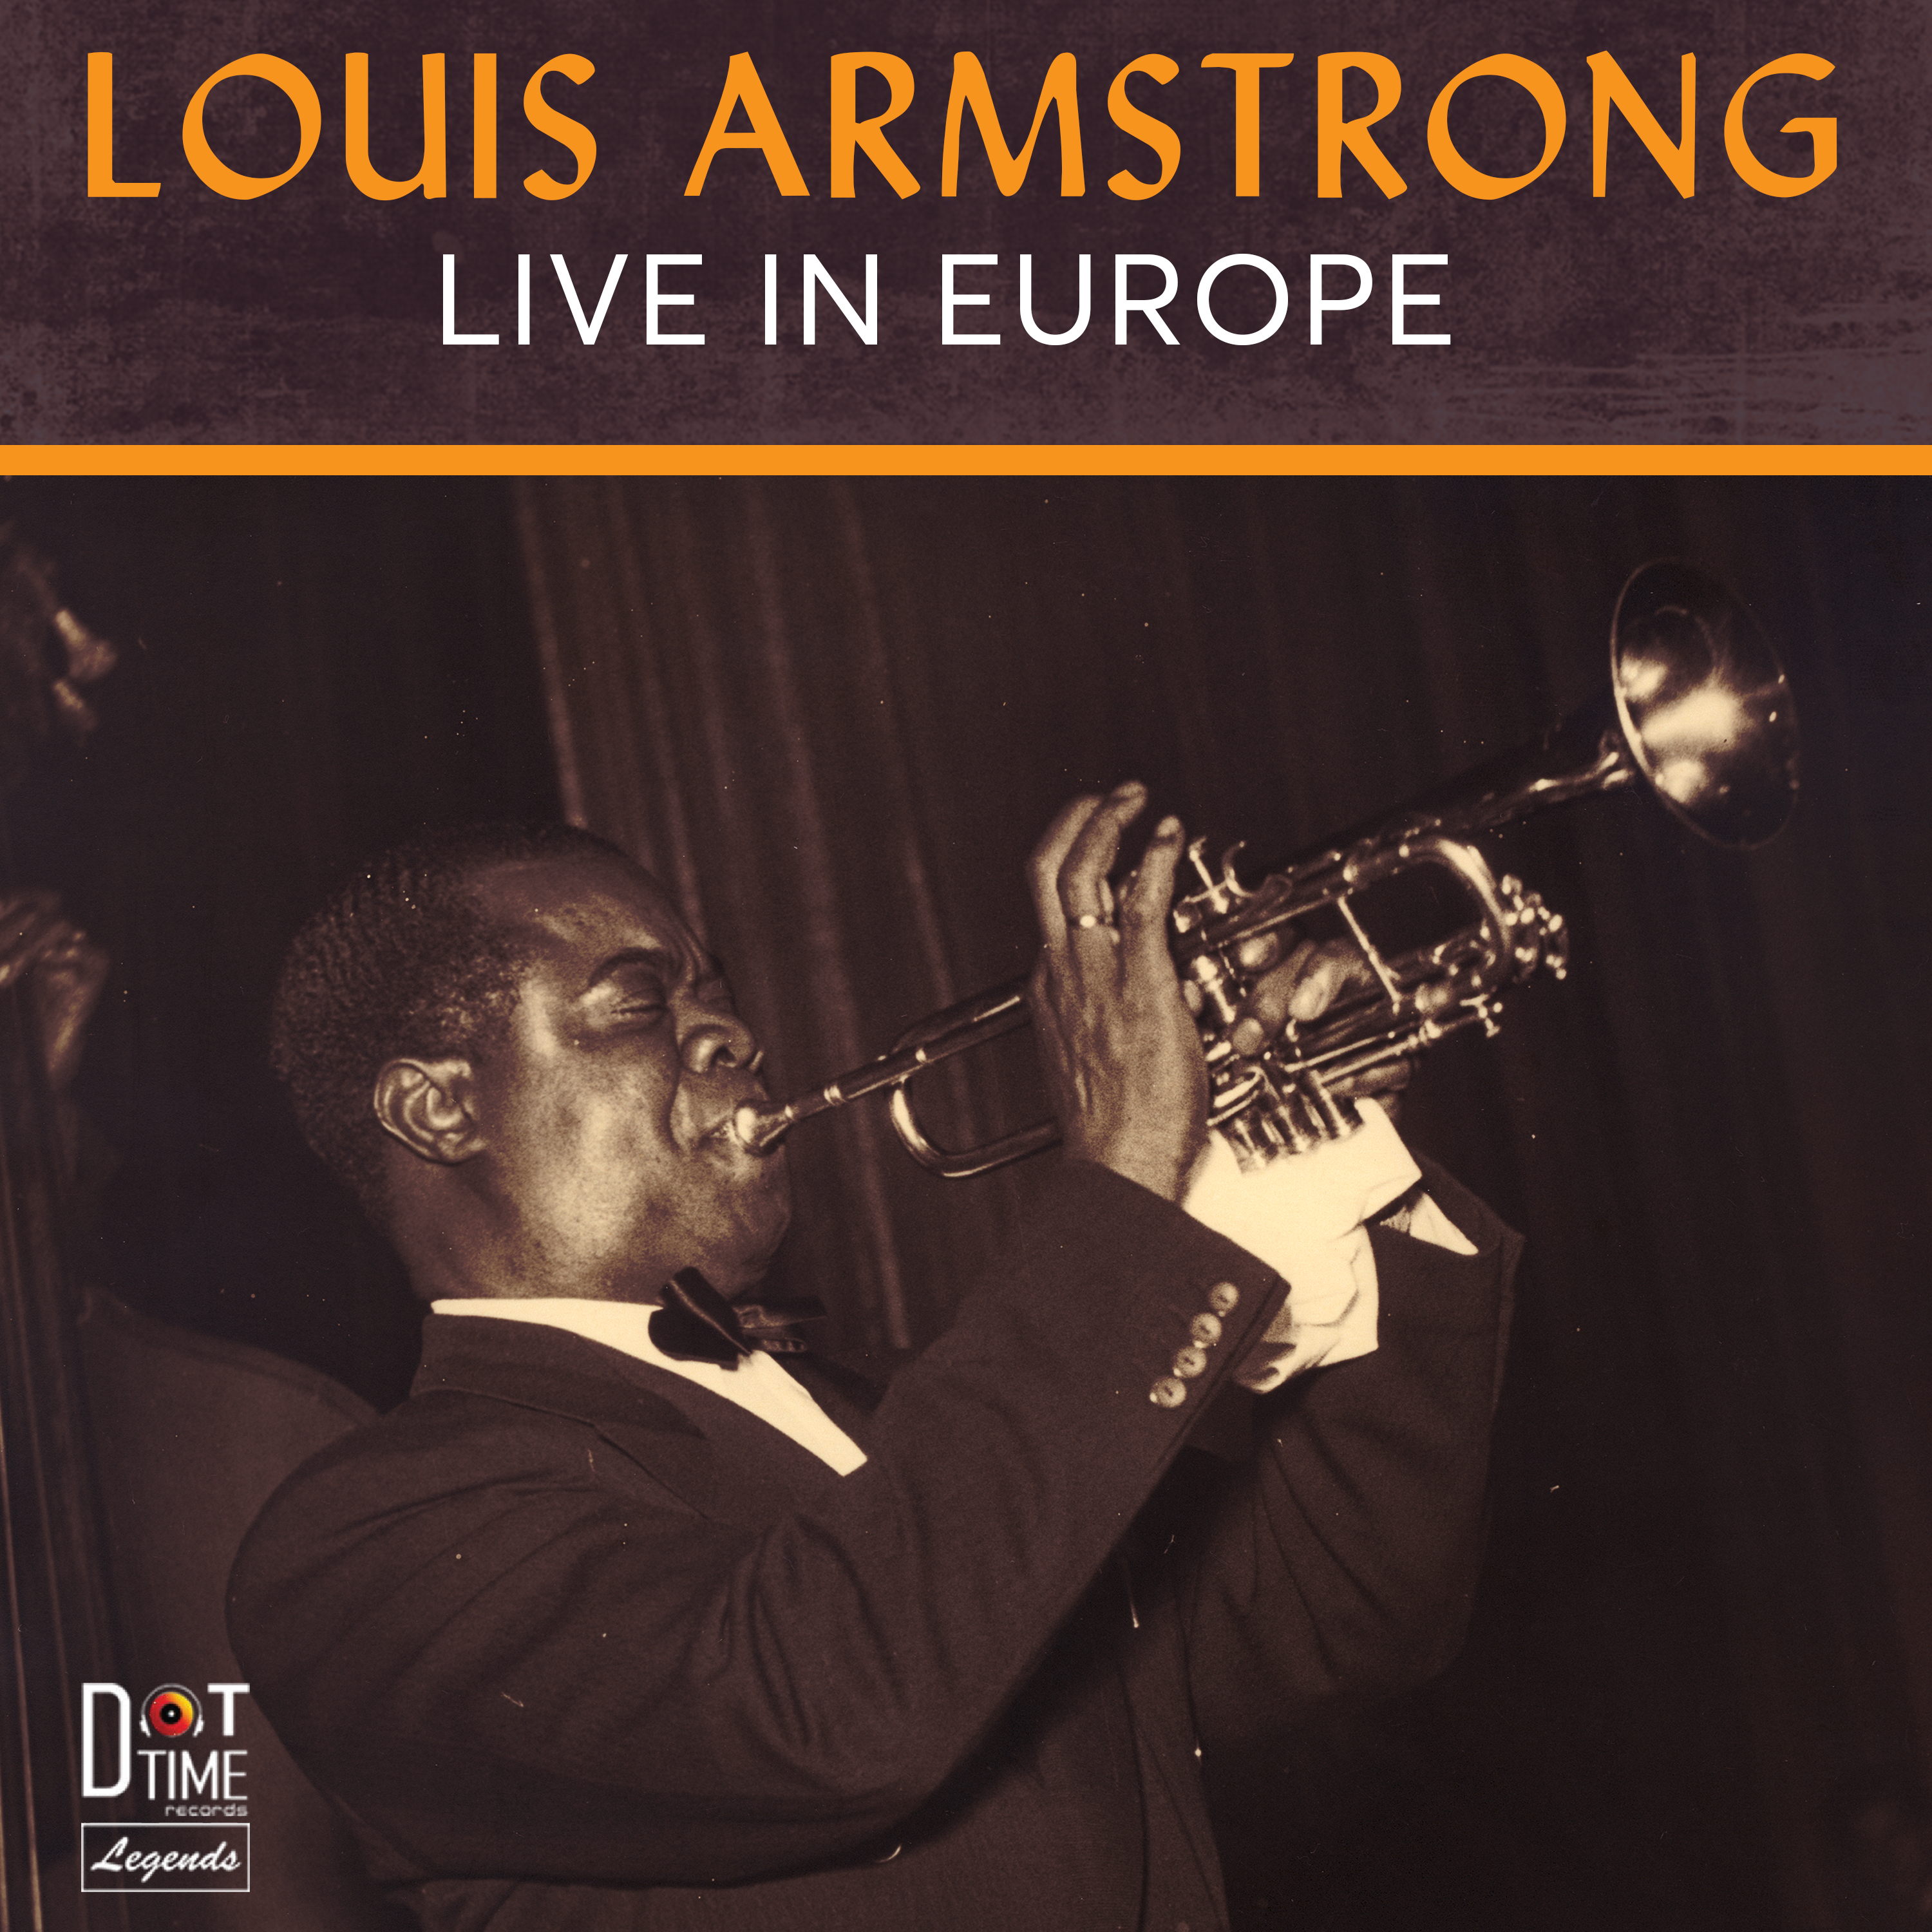 Feature: Dot Time Records' Legends series new release – Louis Armstrong Live in Europe by London Jazz News